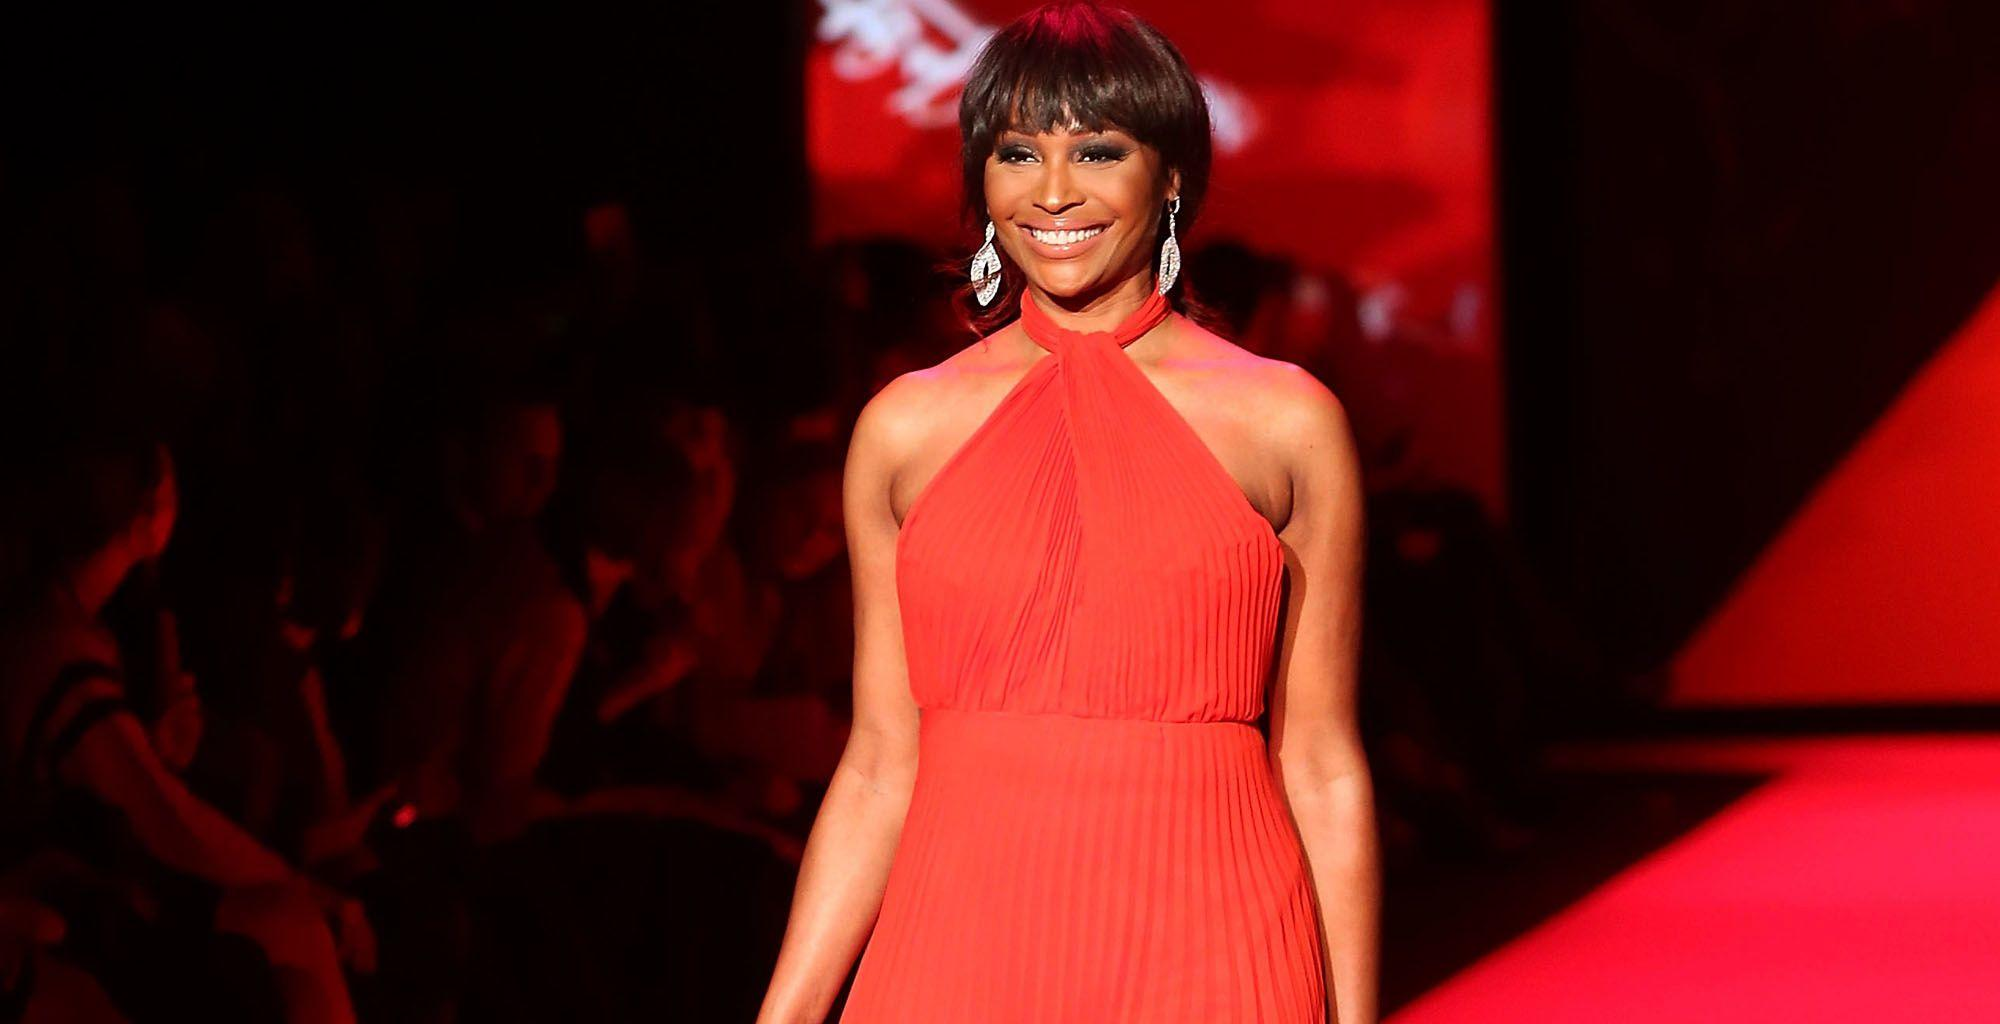 Cynthia Bailey's Latest Video Has Fans Criticizing Her